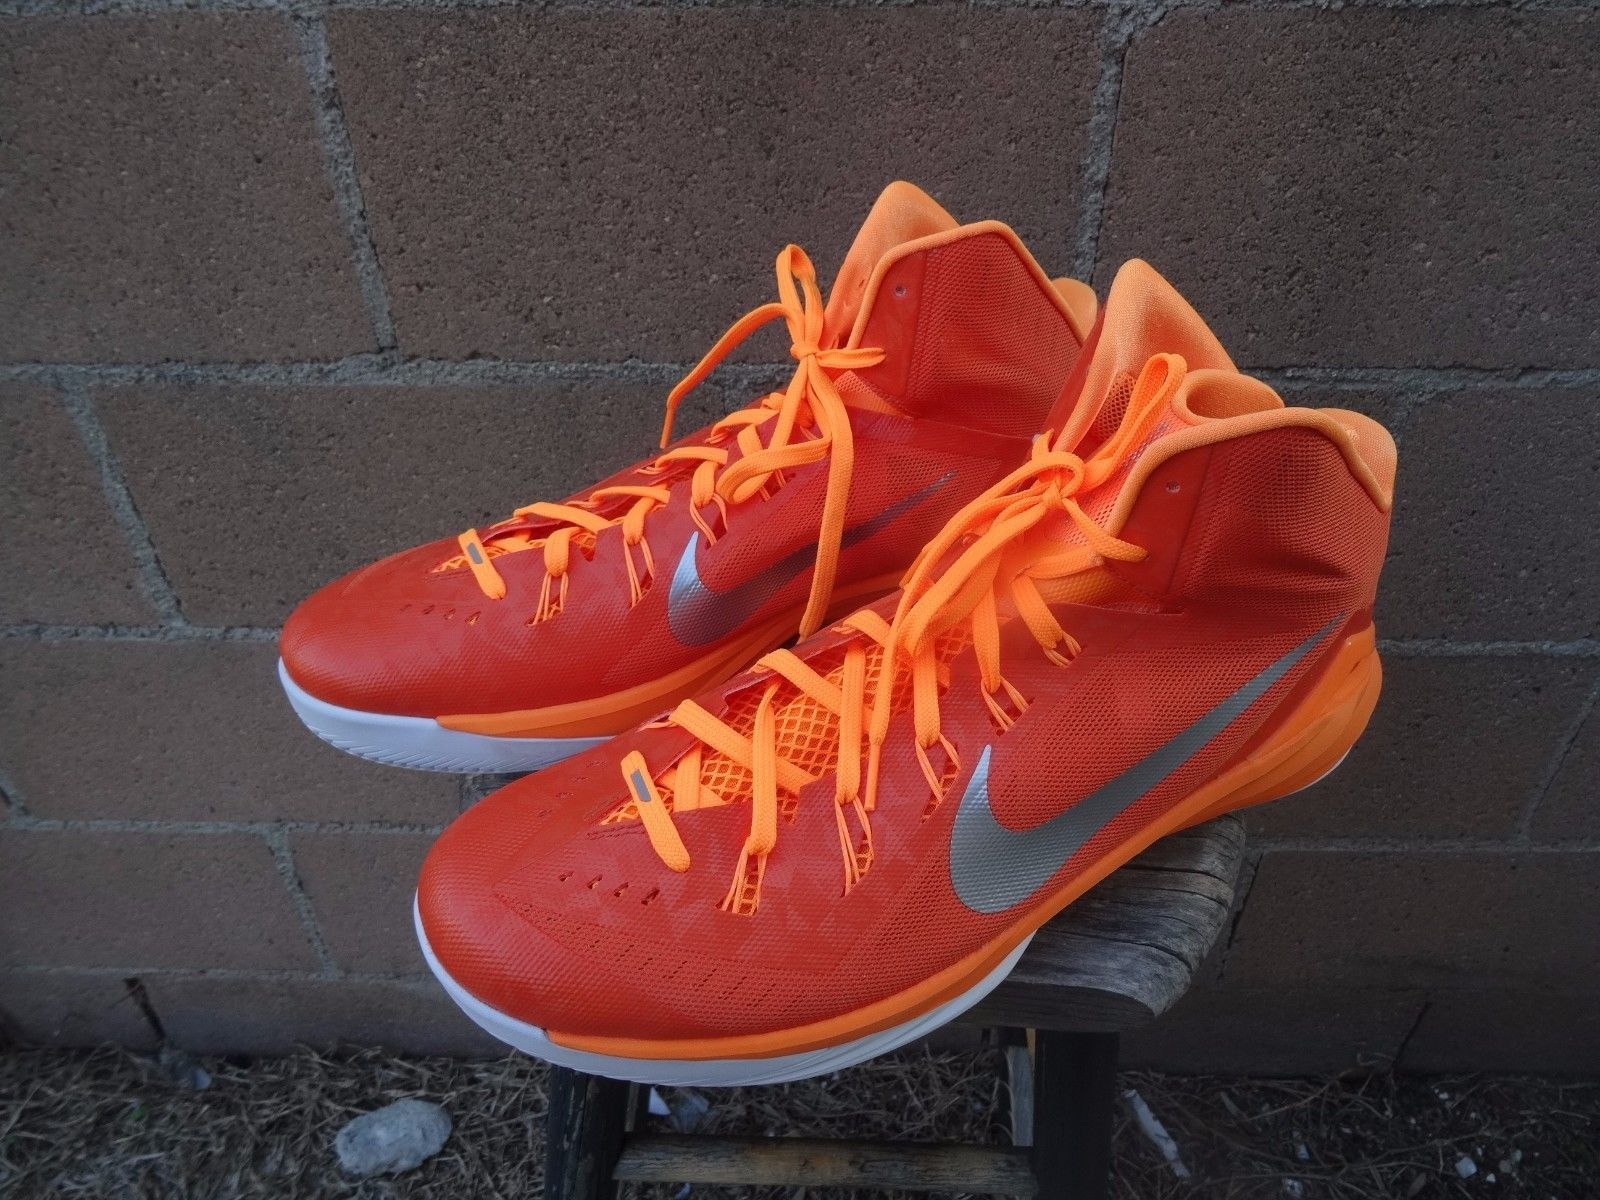 71a625b64826 ... spain nike hyperdunk 2014 653483 808 mens orange silver white size 18  44d64 165e3